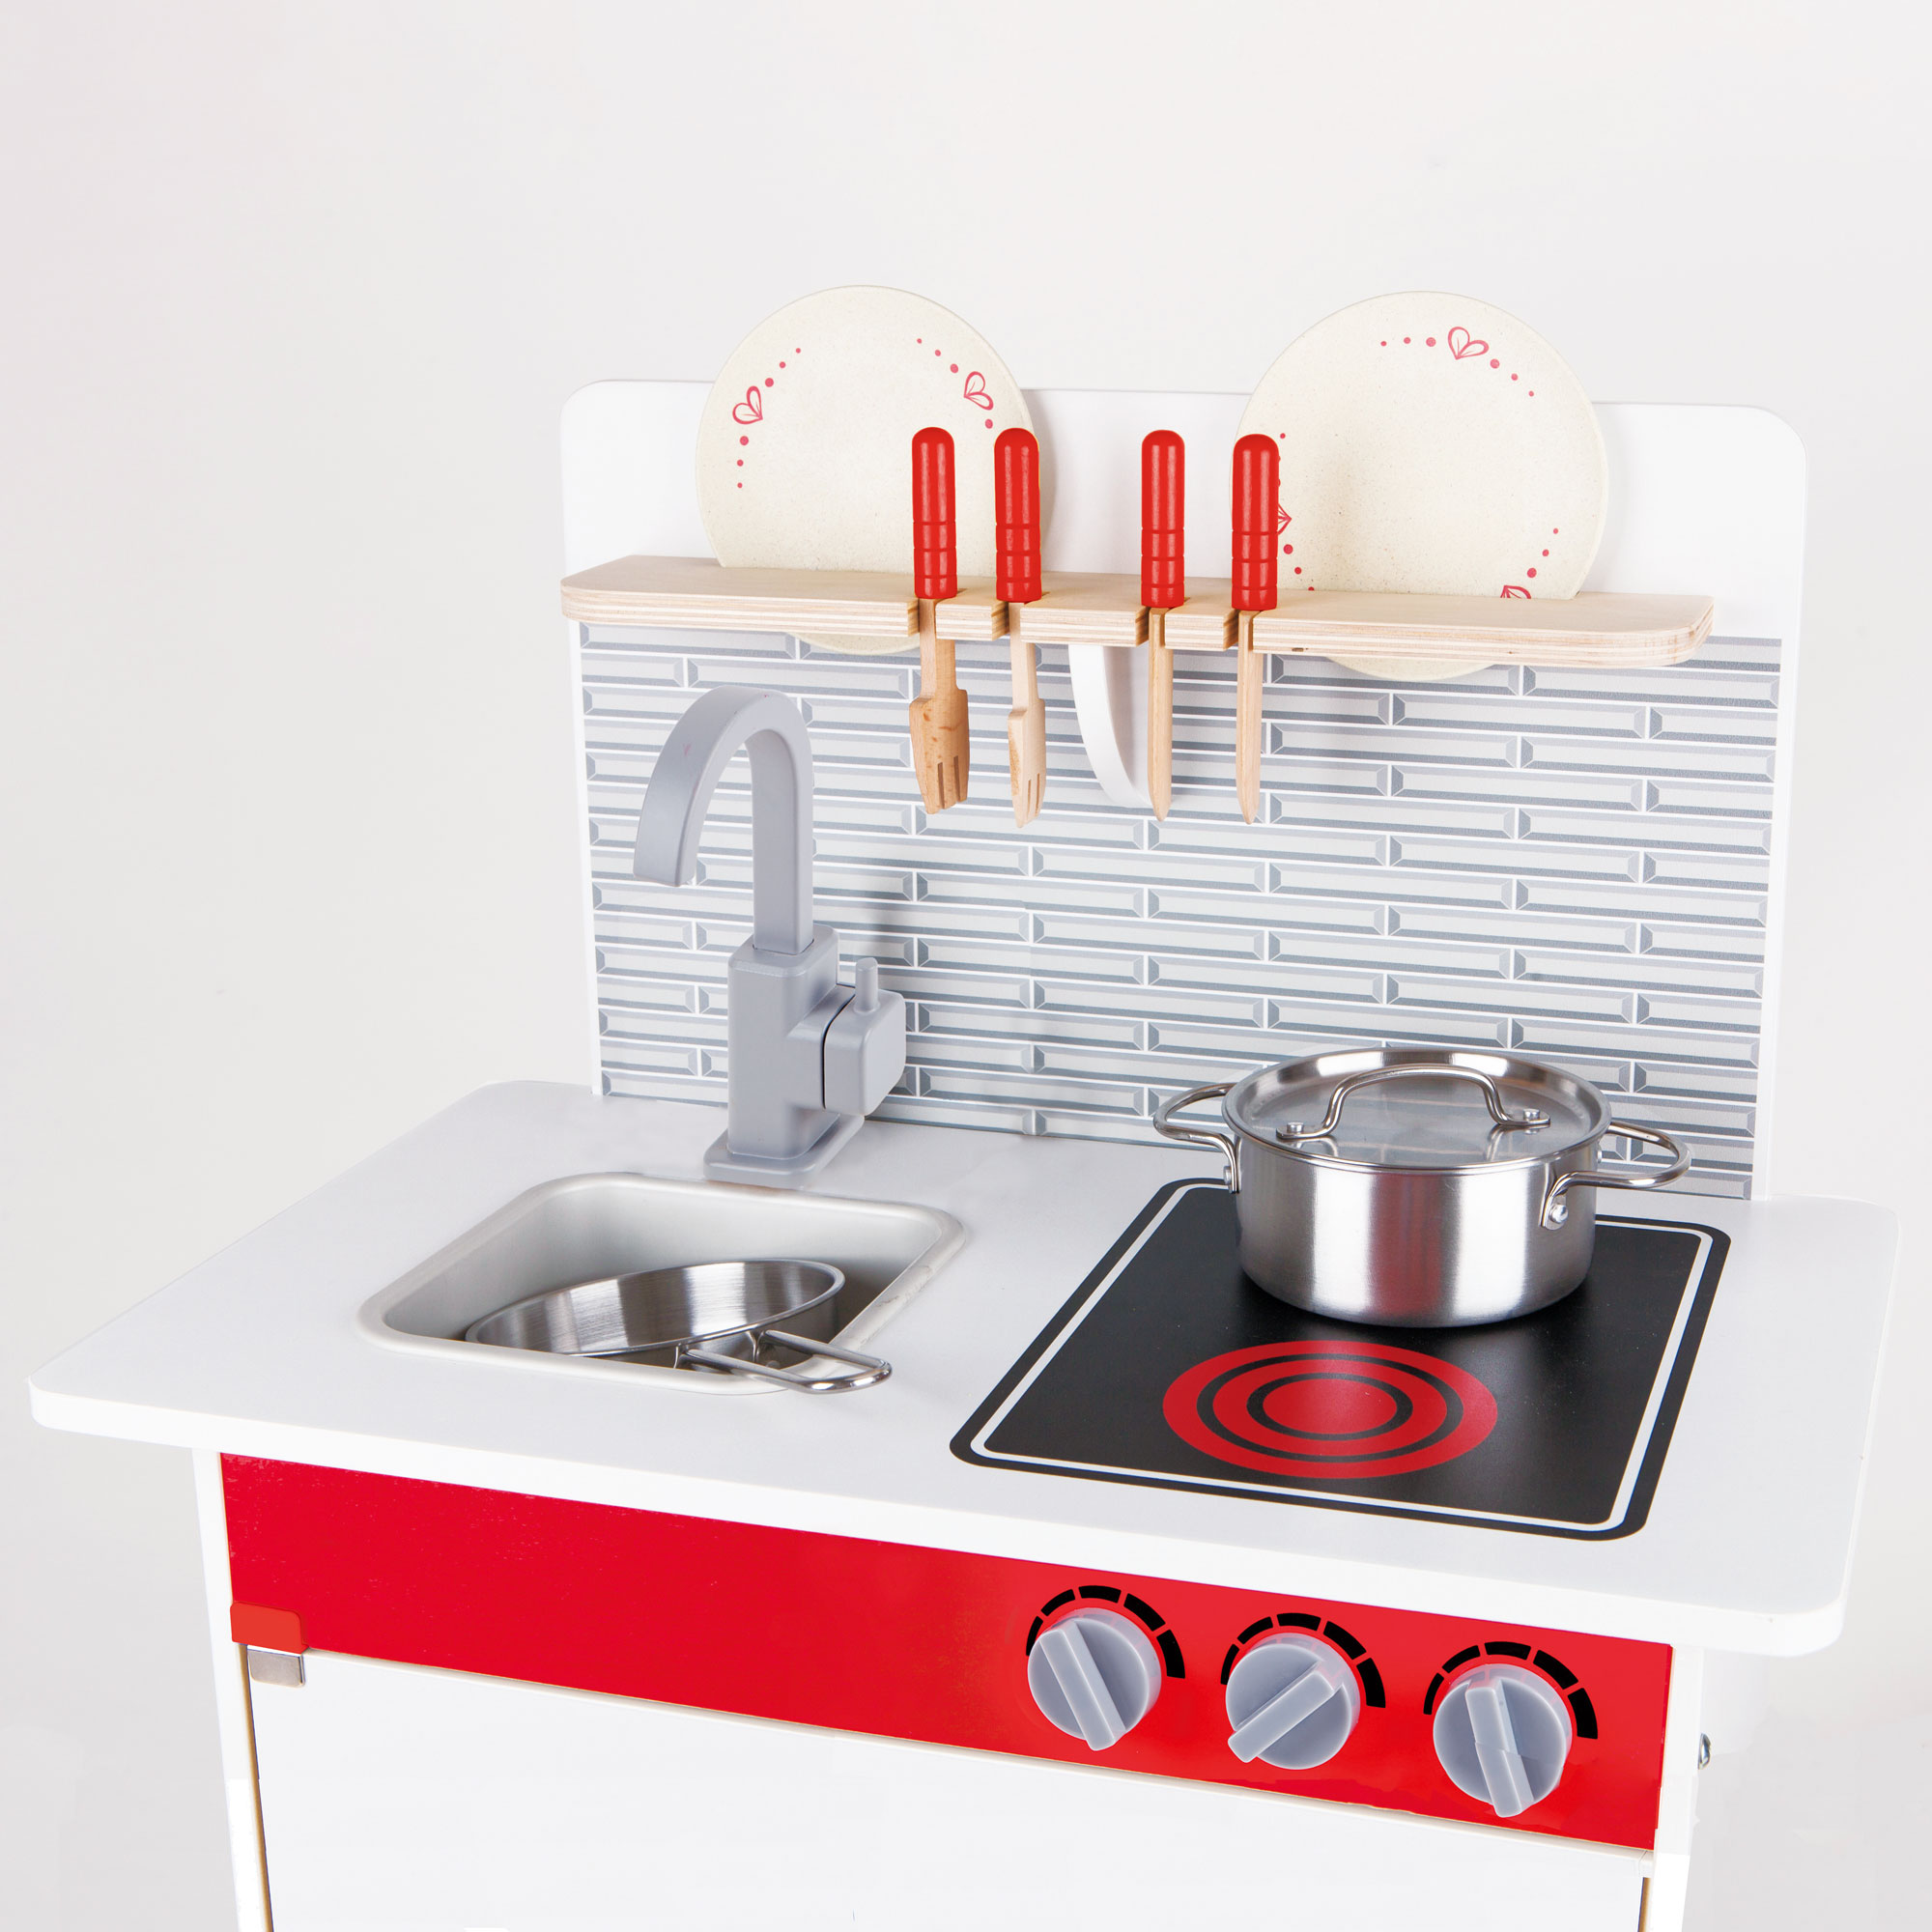 Hape wooden city cafe pretend cooking play kitchen set for Toddler kitchen set